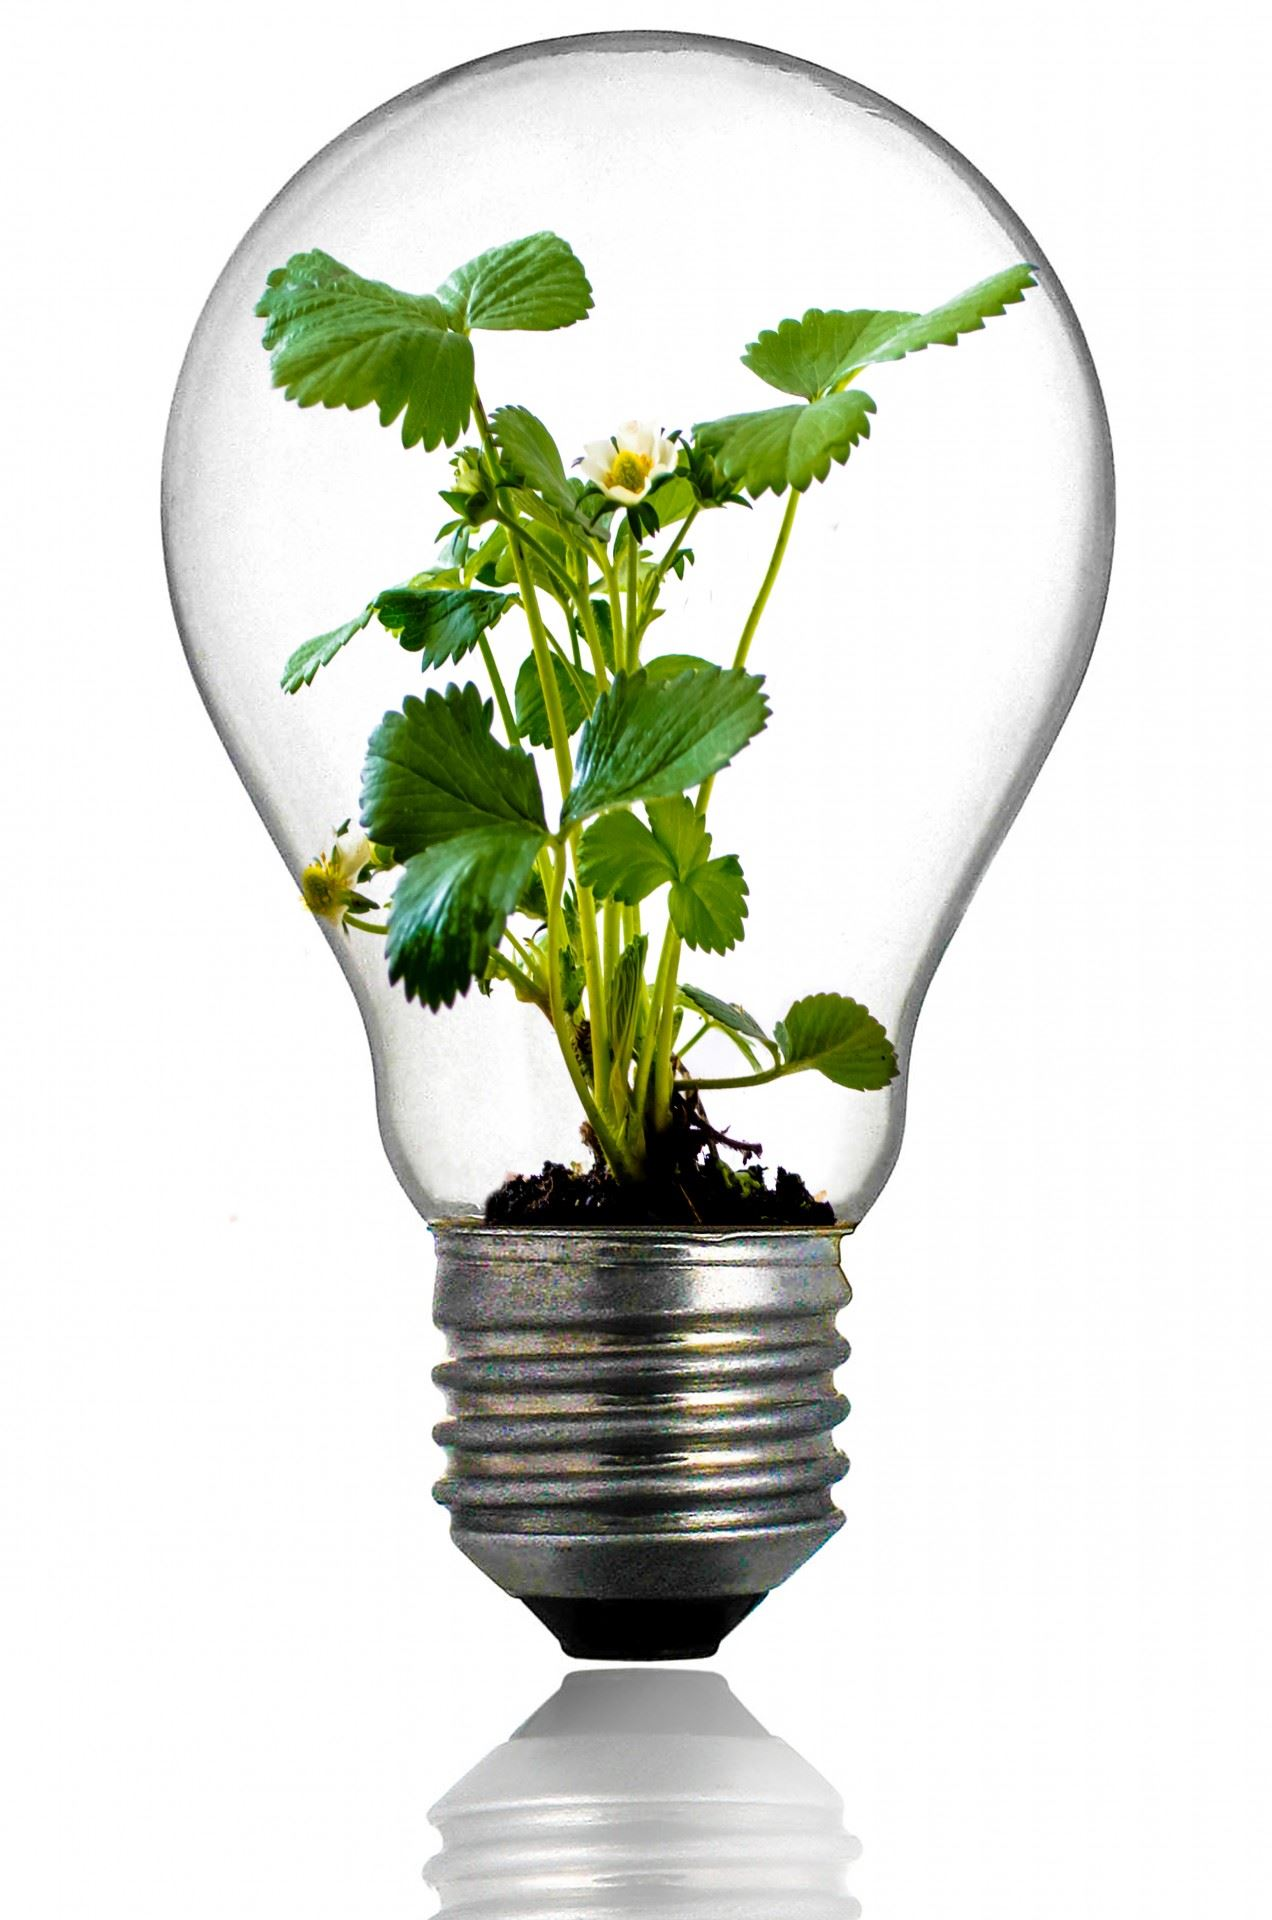 green-plant-in-the-light-bulb